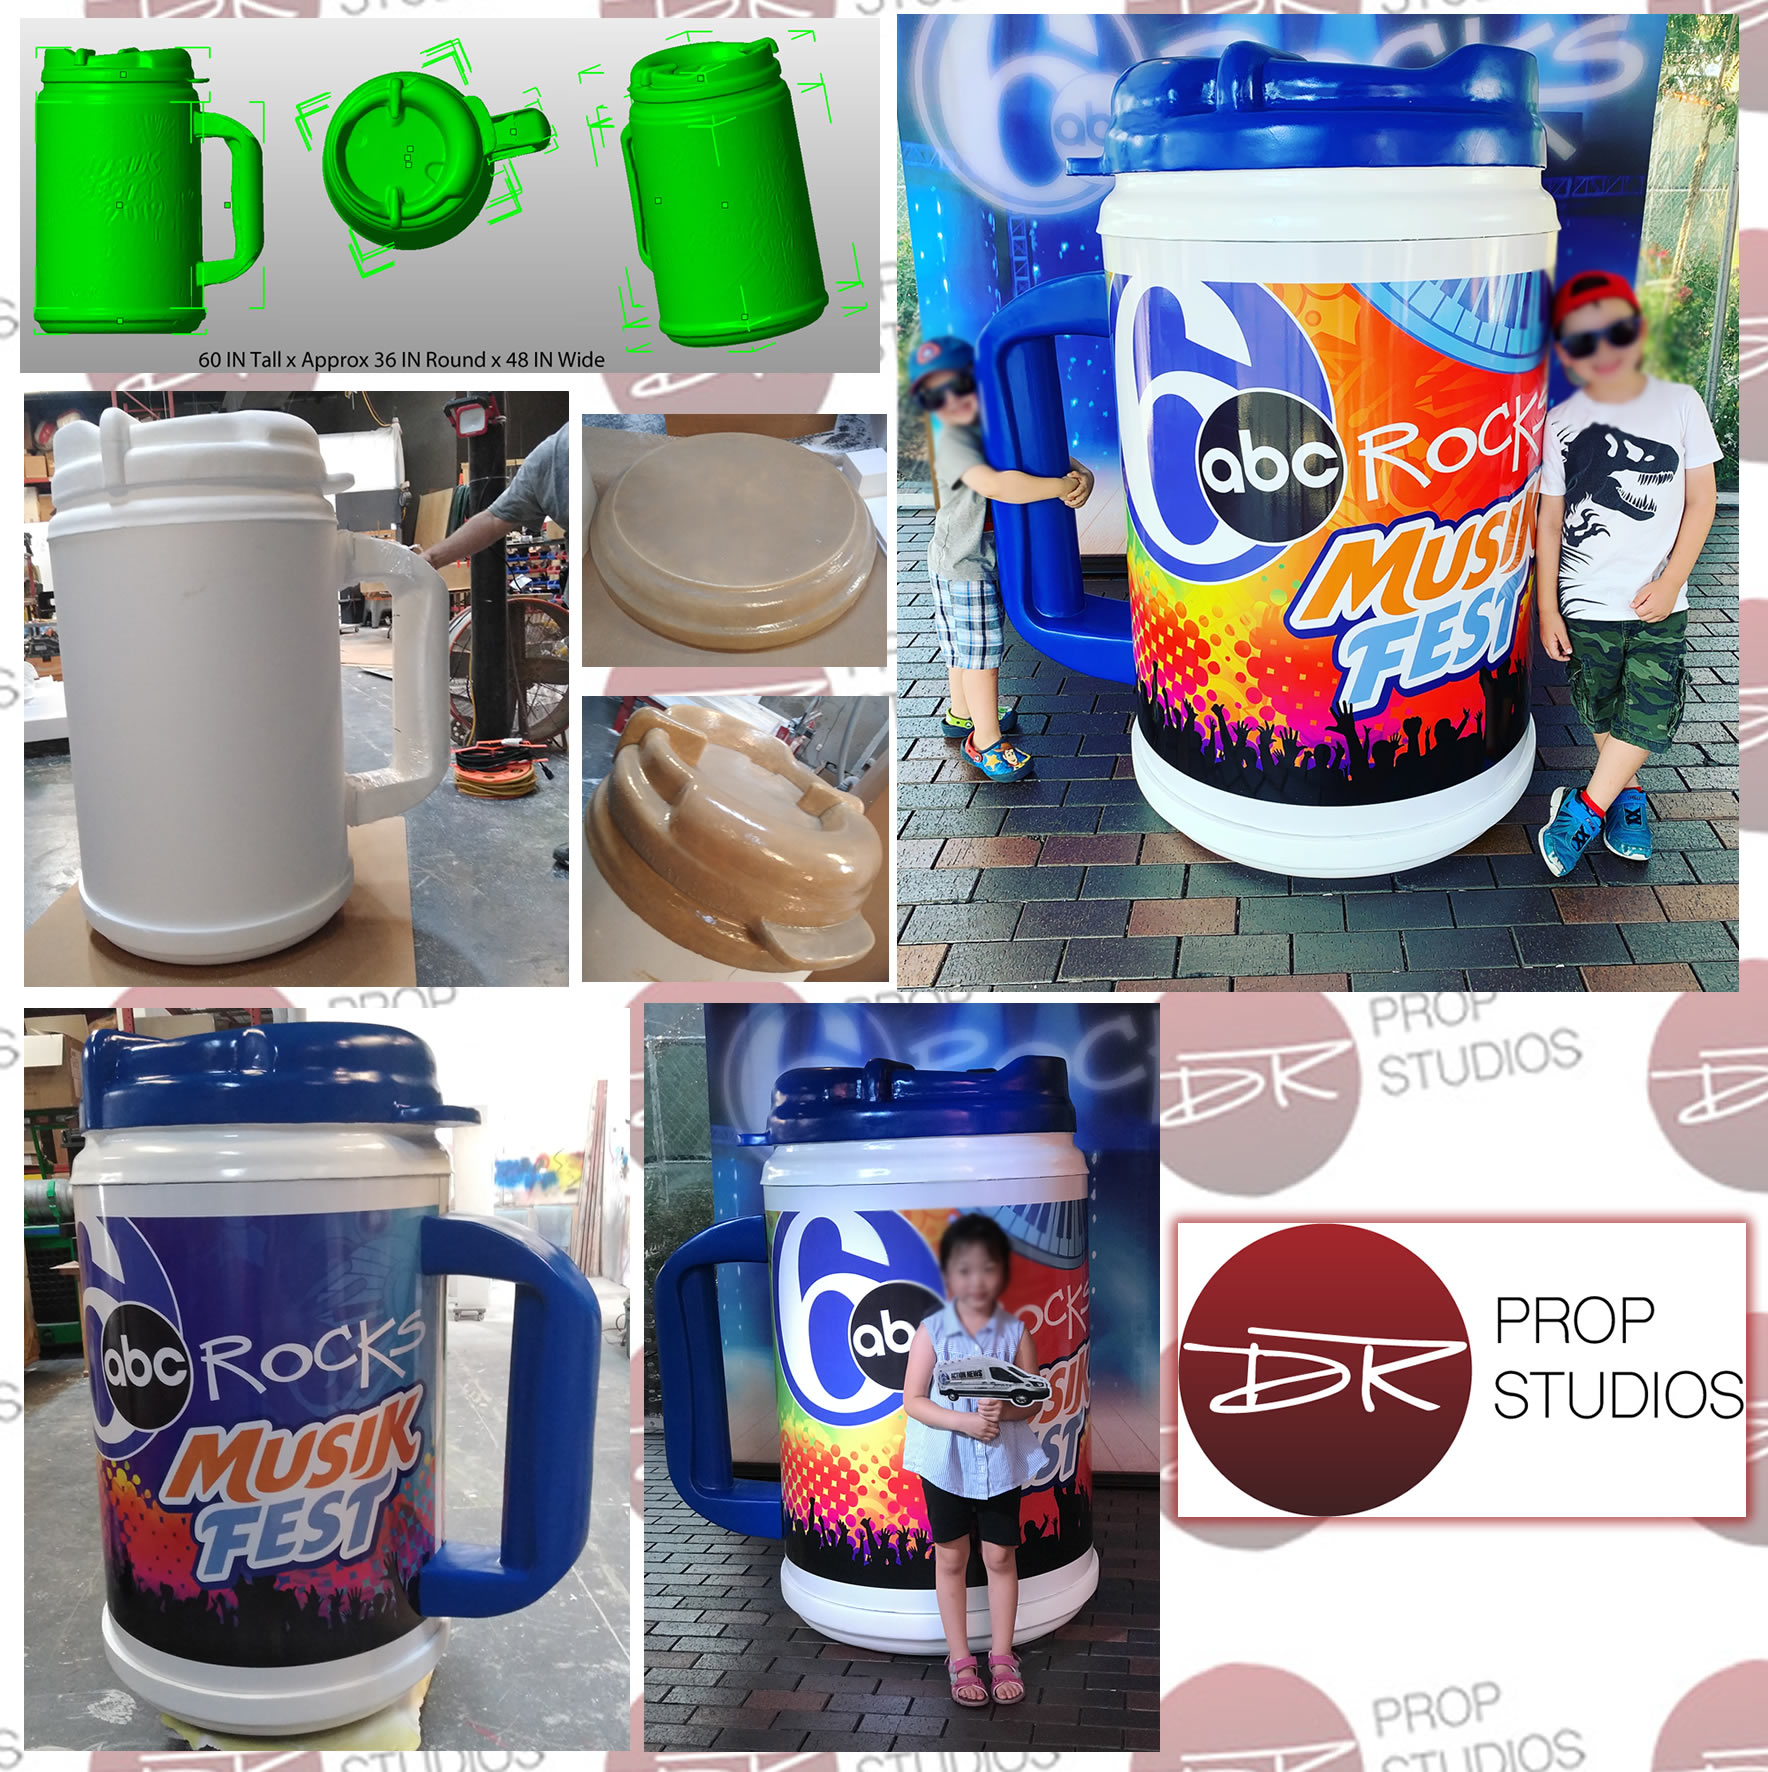 abc musikfest large foam mug for events and tradeshows